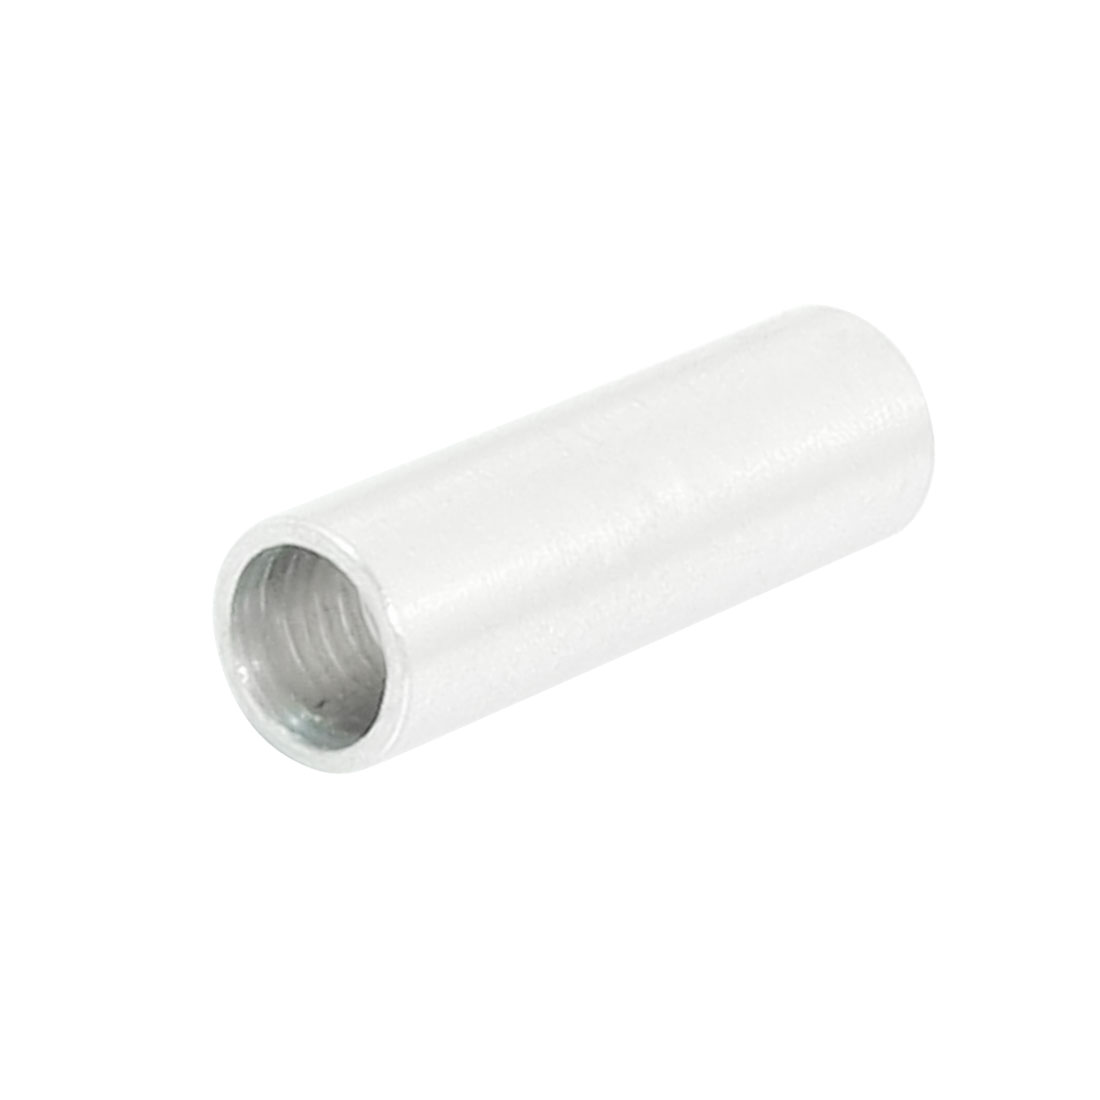 6.35mm x 5mm x 20mm Cylinder Shape Aluminum Boat Prop Shaft Converter Adapter for RC Model Ship Boat